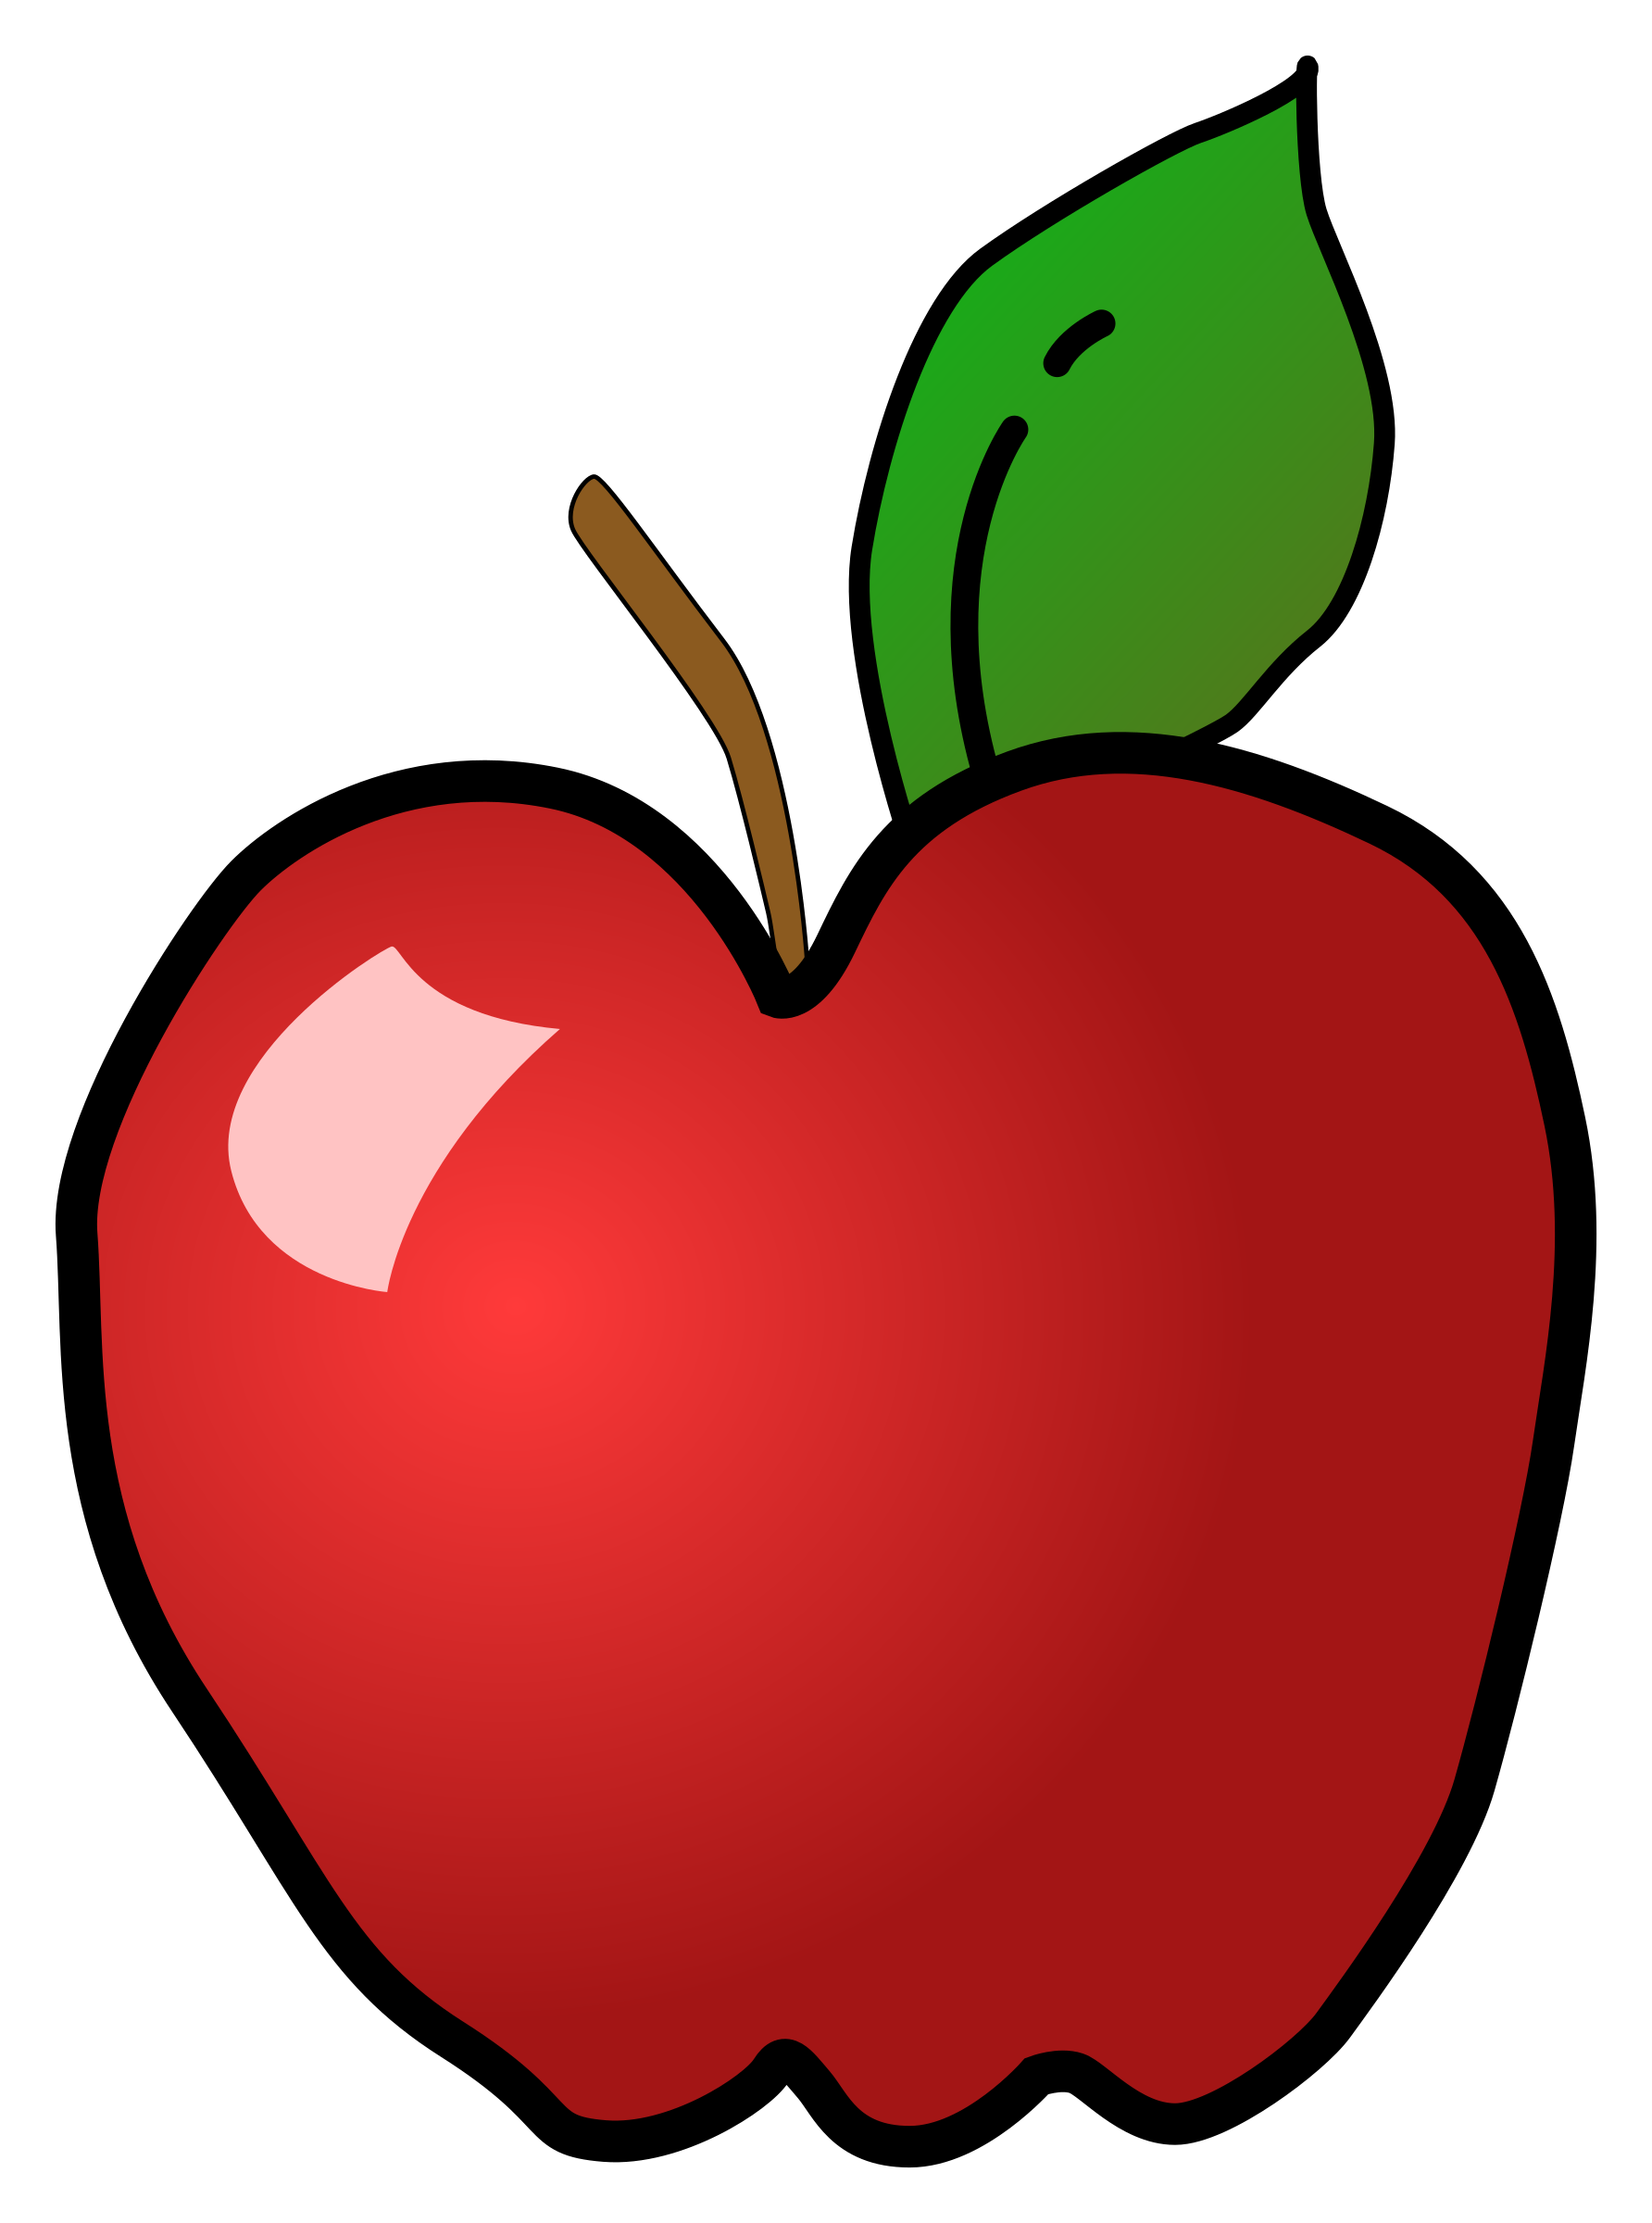 Clipart Polished Apple Apple, Clip art, Red apple